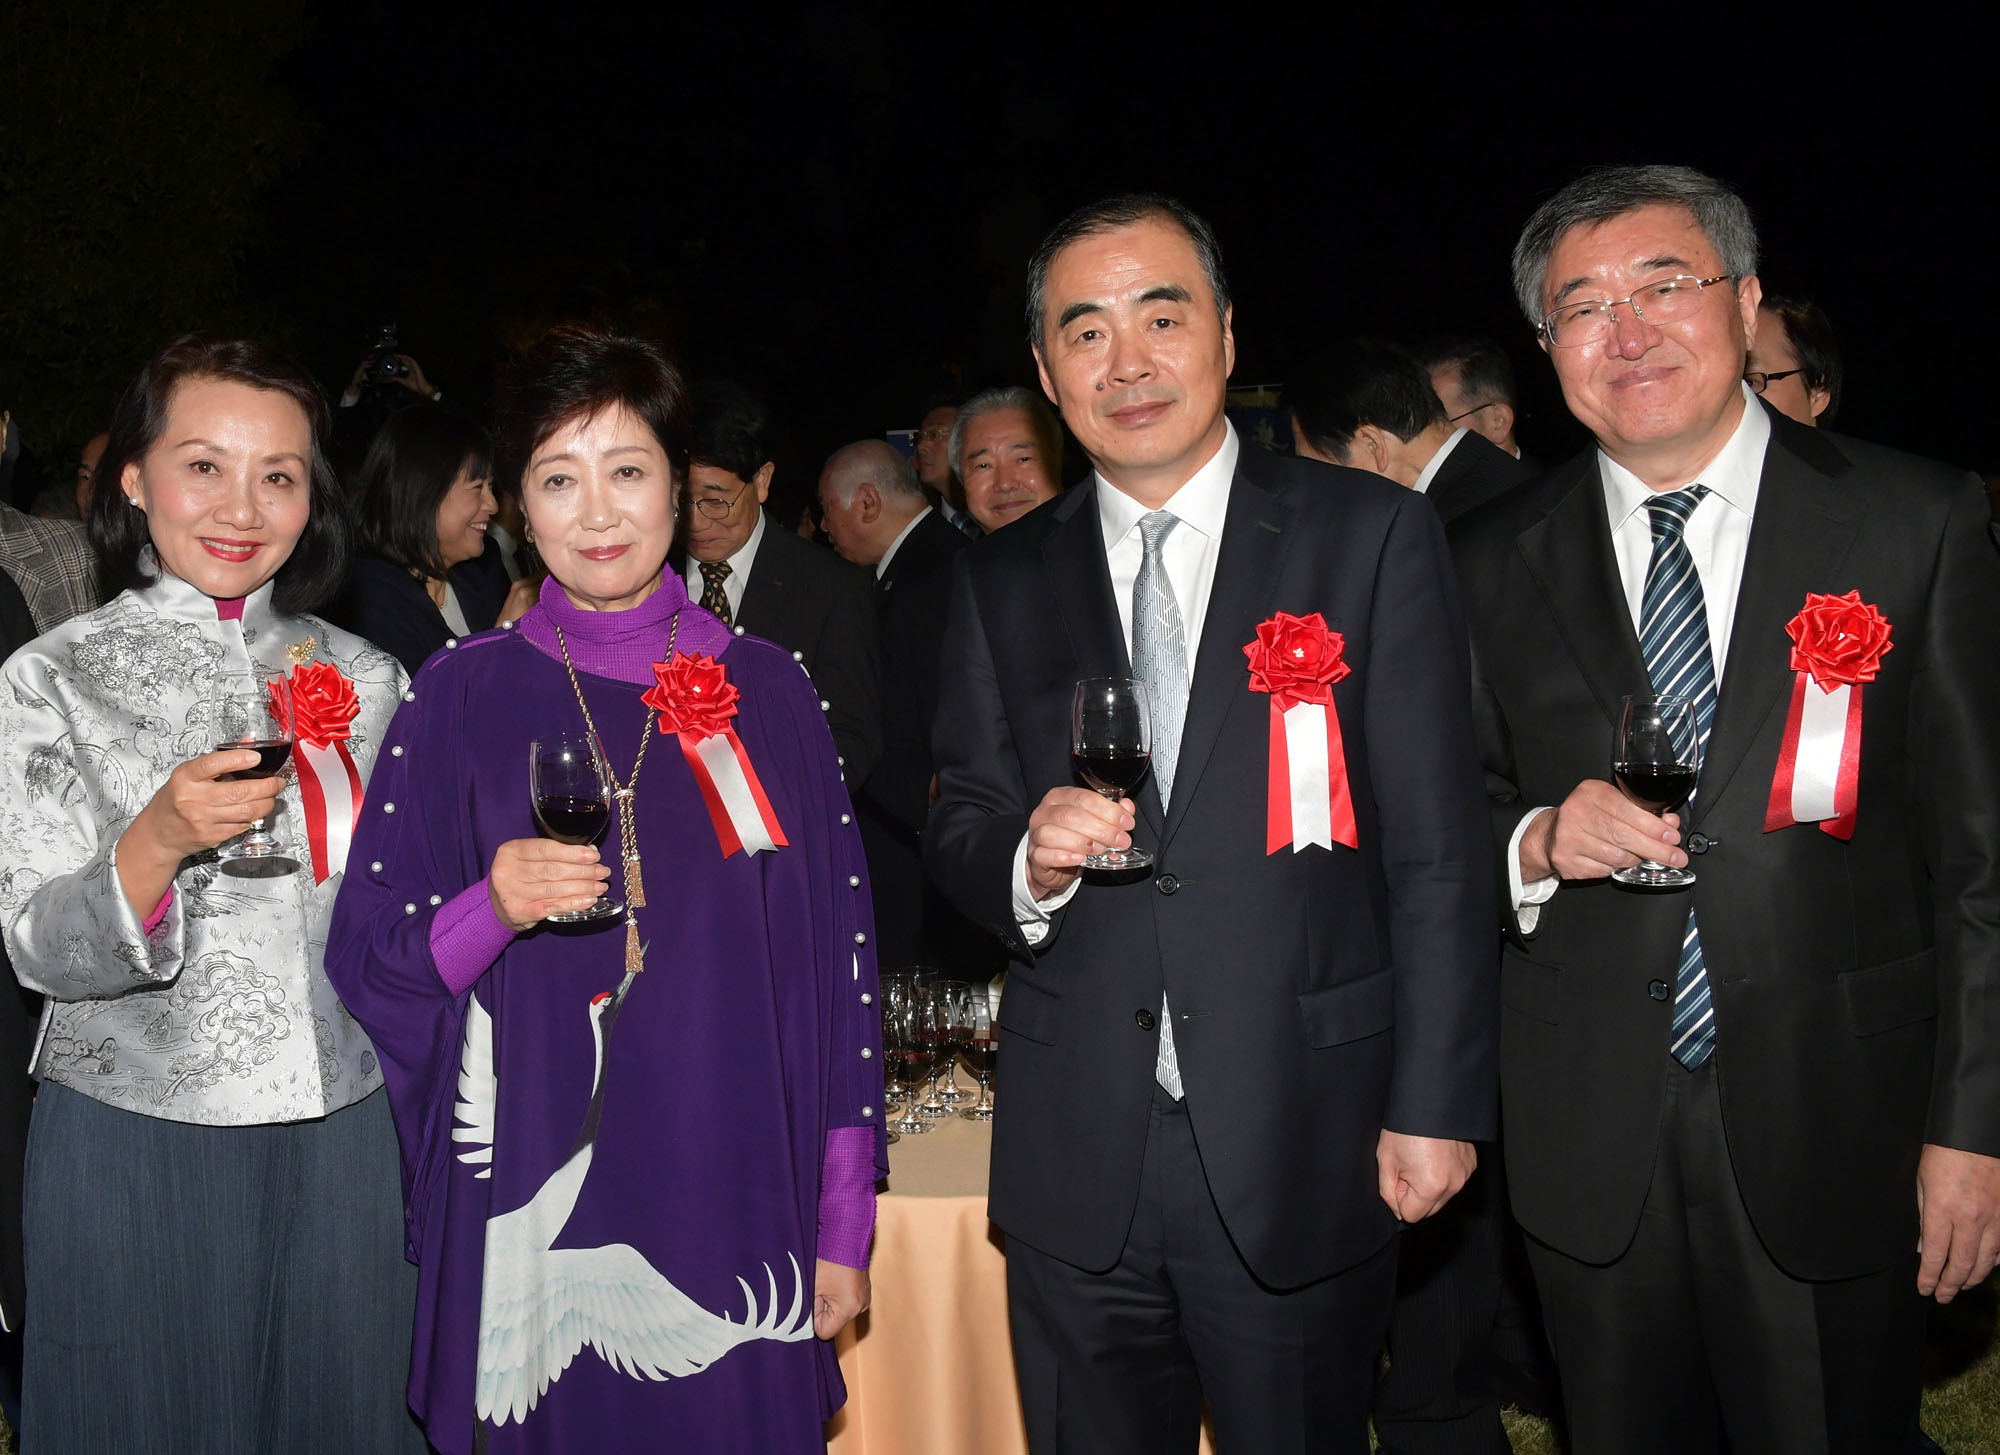 Chinese Ambassador Kong Xuanyou (second from right) and his wife Wang Xiujun (left) with Tokyo Governor Yuriko Koike (second from left) and Deputy Mayor of Beijing Sui Zhenjiang (right) during the reception Kinshu Kouryuu no Yuube, an annual dinner celebrating the relations between Tokyo and Beijing at the Chinese Embassy on Nov. 6. | YOSHIAKI MIURA